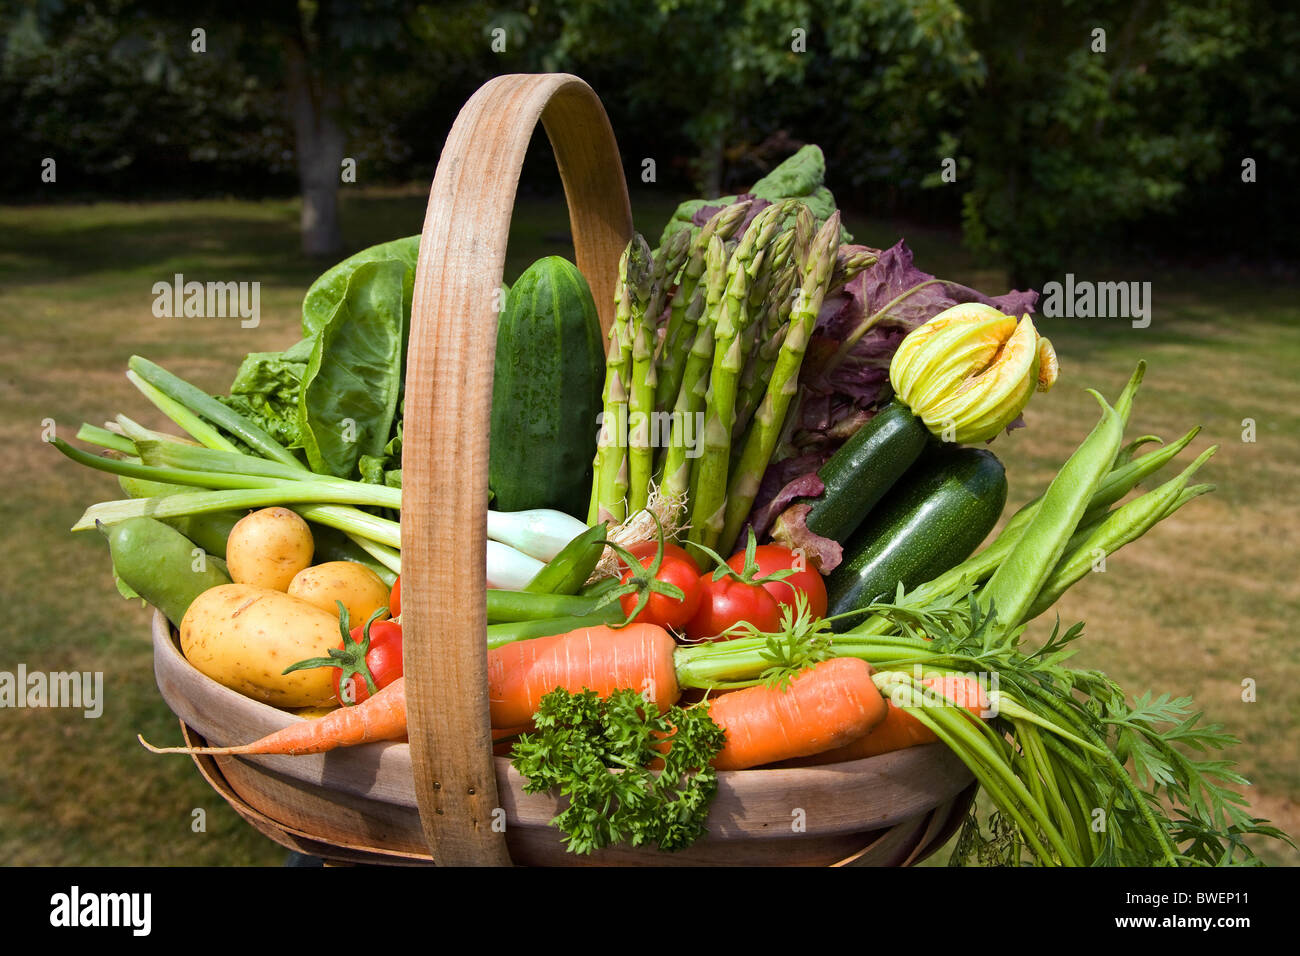 Colourful trug of locally grown freshly picked summer vegetables in country garden with trees in the Weald of Kent - Stock Image